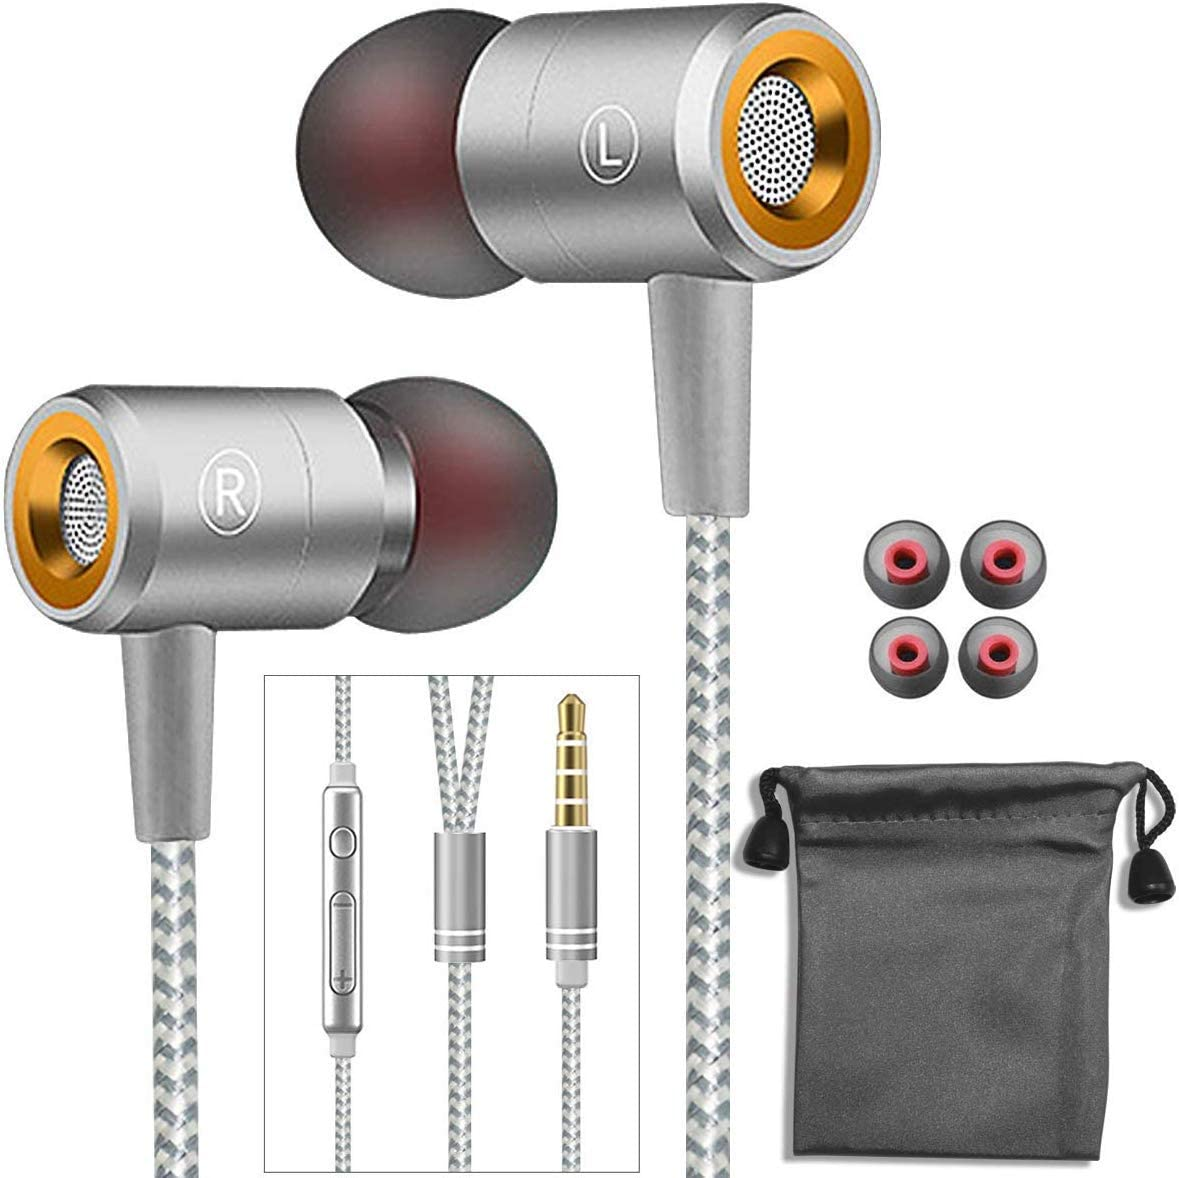 Earphones,in-Ear Earbuds Headphones Wired Headphone Metal Noise Cancelling Stereo Heave Bass with Mic and Remote for Phones,Samsung Galaxy,MP3 Players and All 3.5mm Music Device